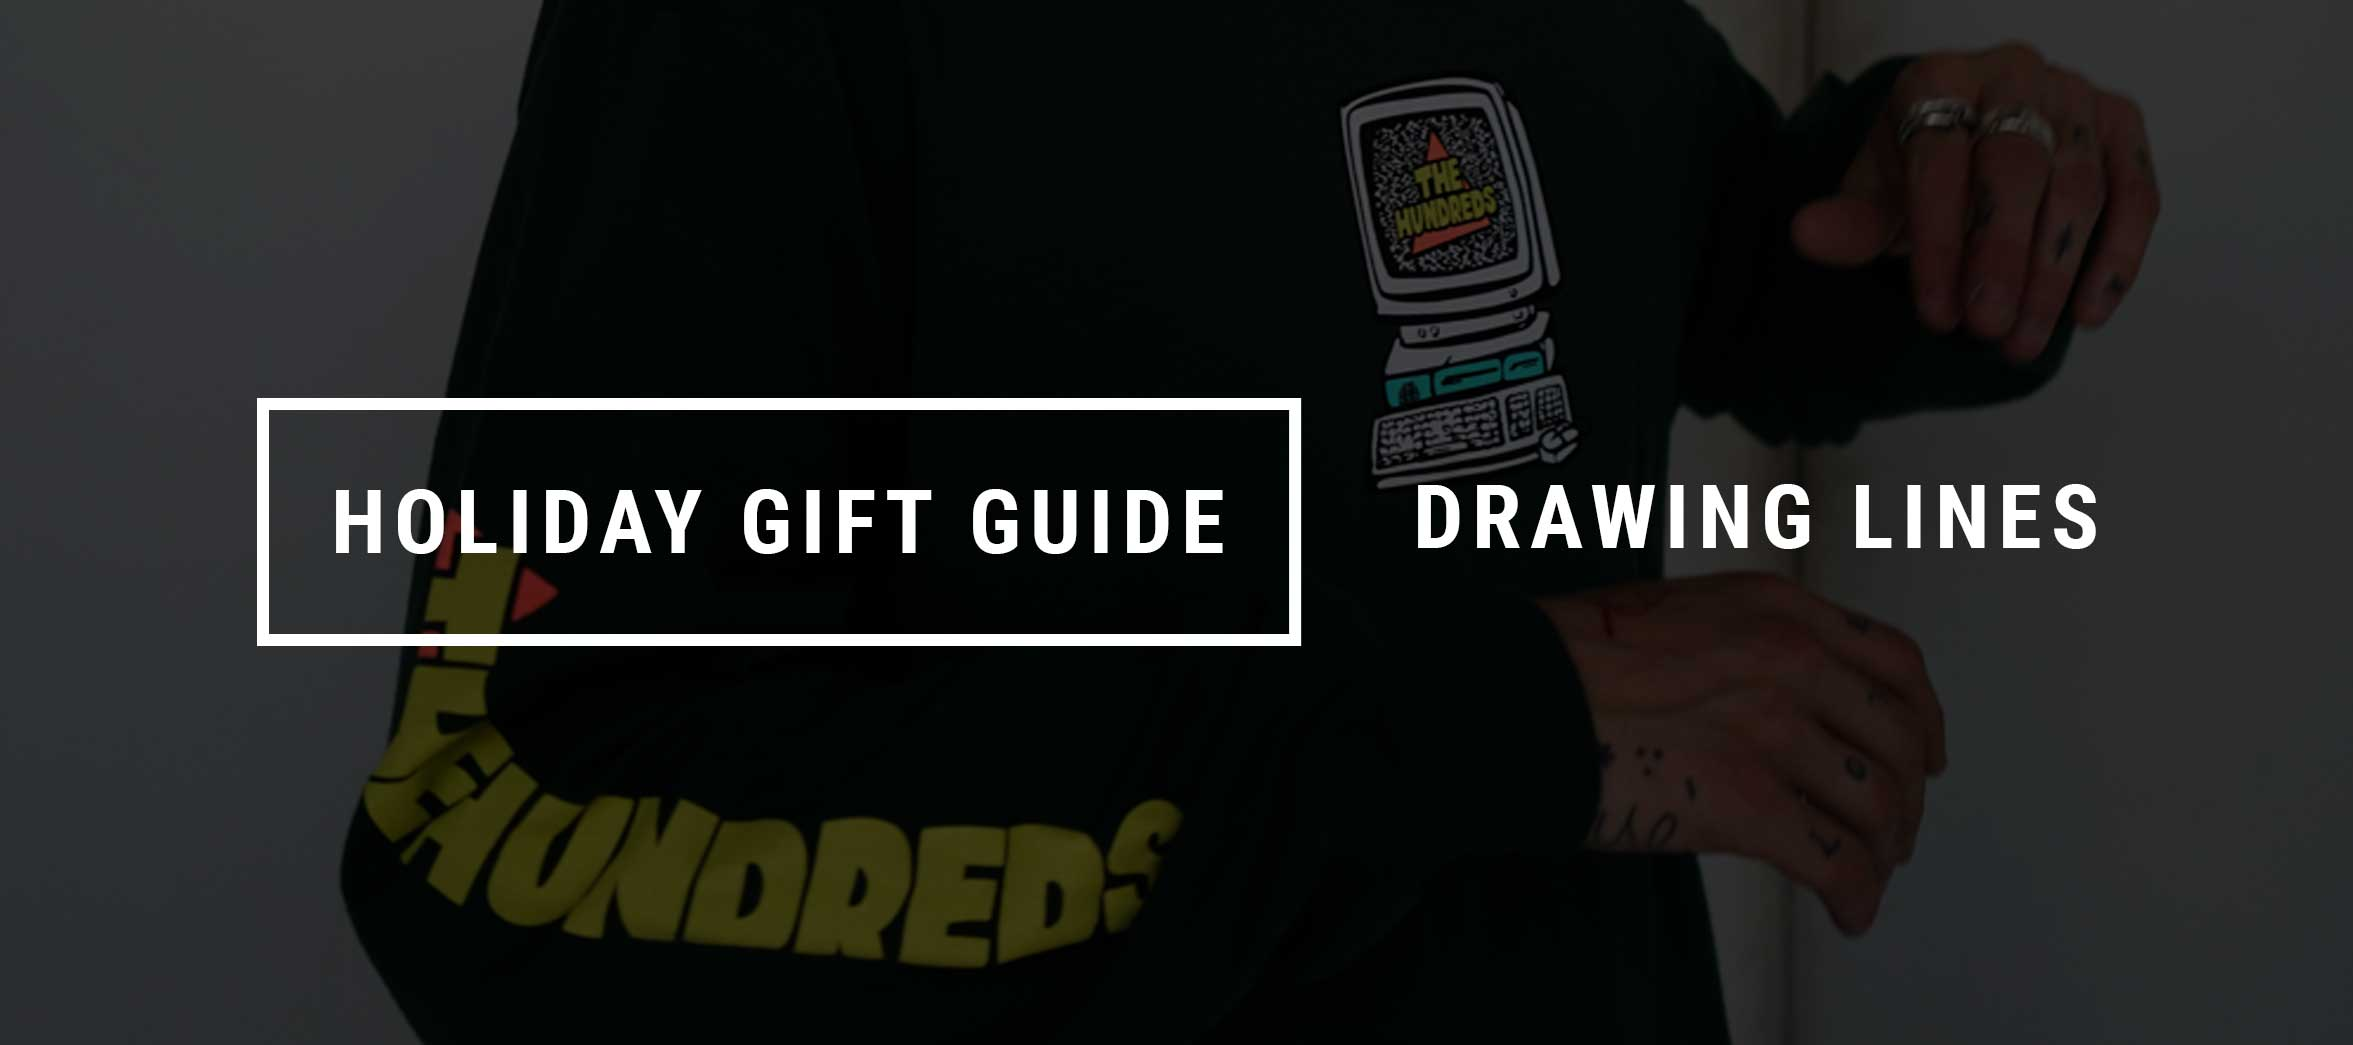 Gift Guide - Drawing Lines